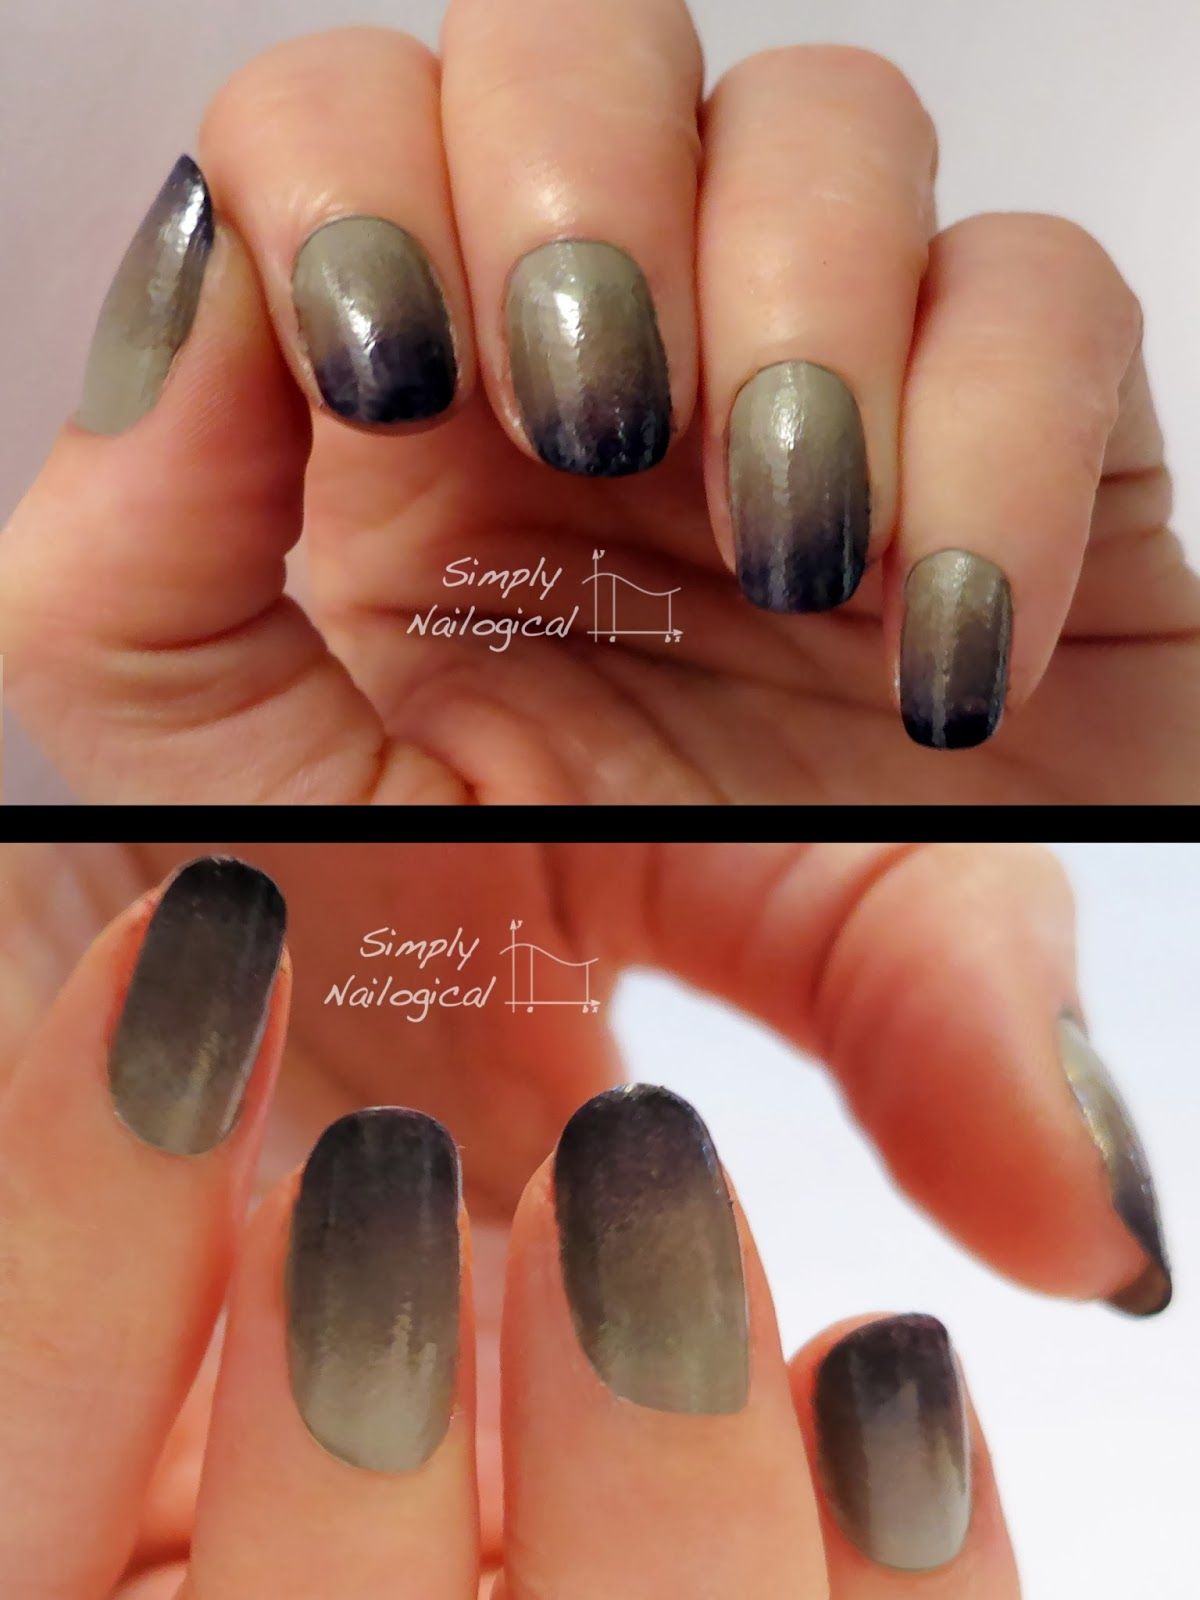 Simply Nailogical: Work appropriate mani Monday: Neutral ombre